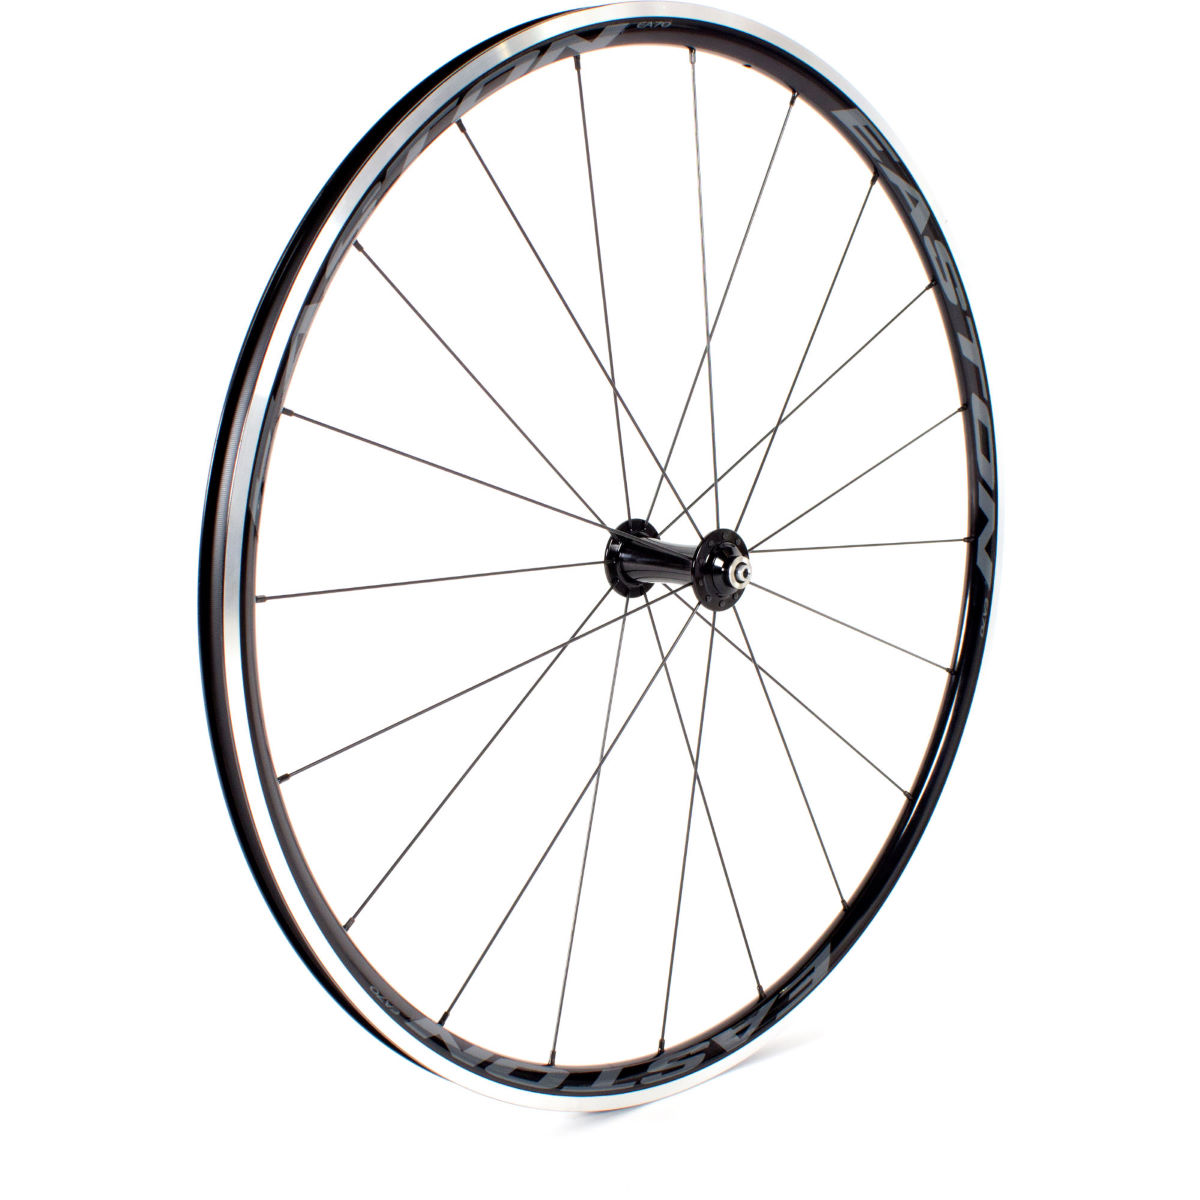 Roue avant Easton EA 70 (alliage, route) - 700c Noir Roues performance